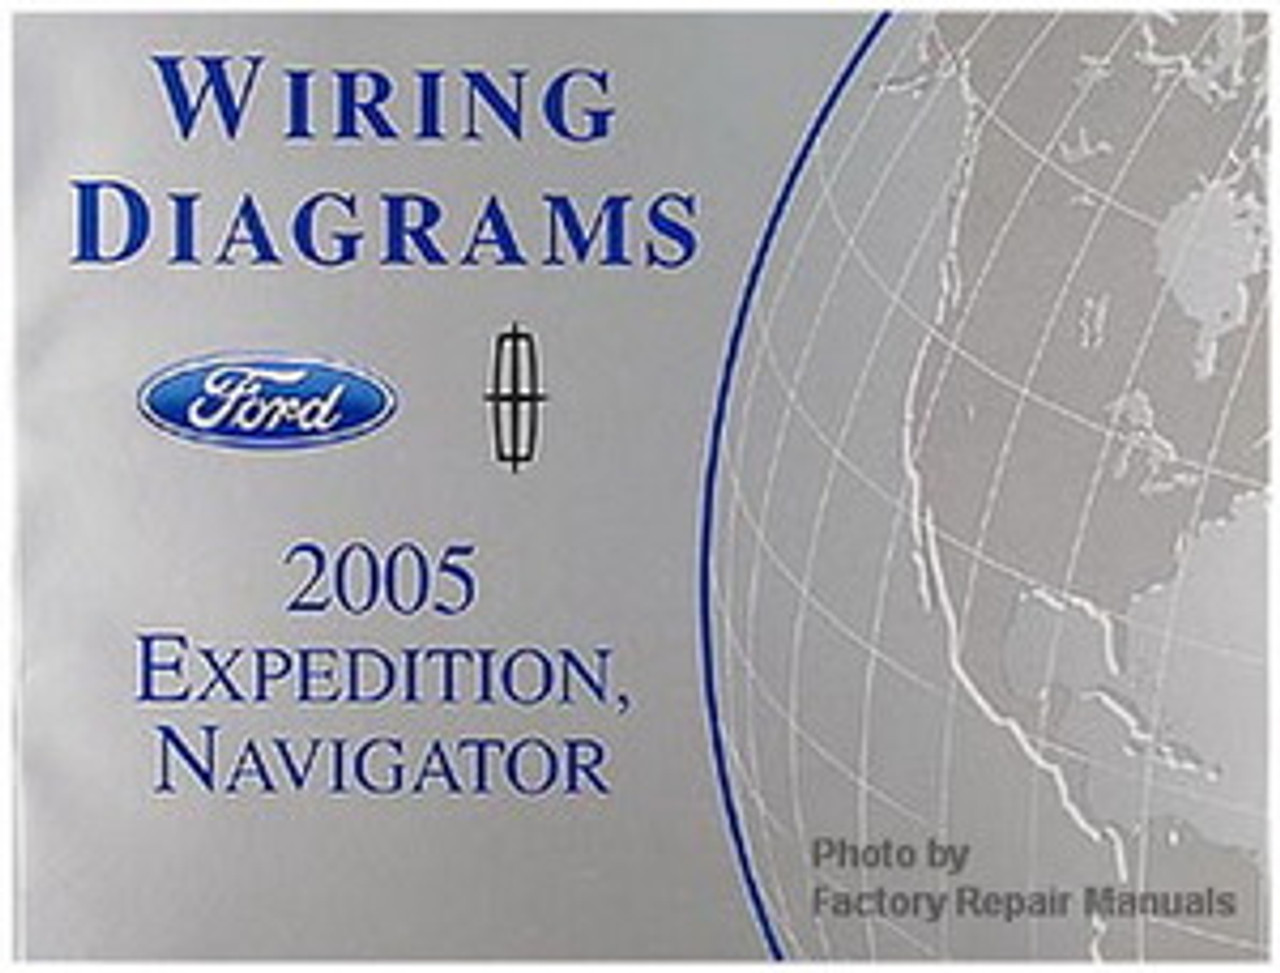 2005 ford expedition and lincoln navigator electrical wiring diagrams manual  original - factory repair manuals  factory repair manuals